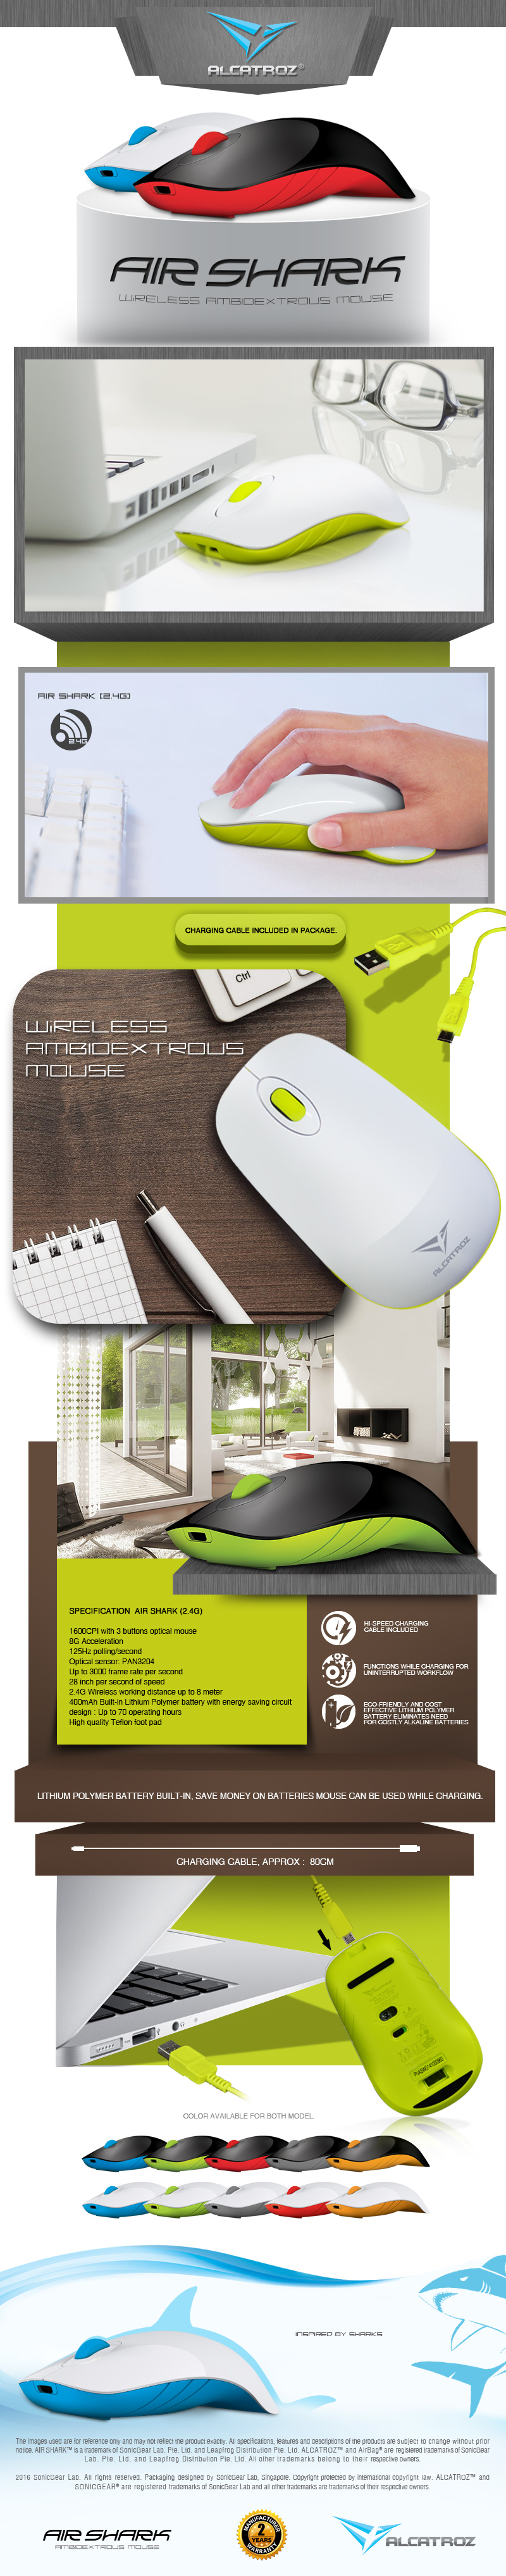 Every Need Want Day Mouse Alcatroz Lithium L2 2 Years Local Warranty